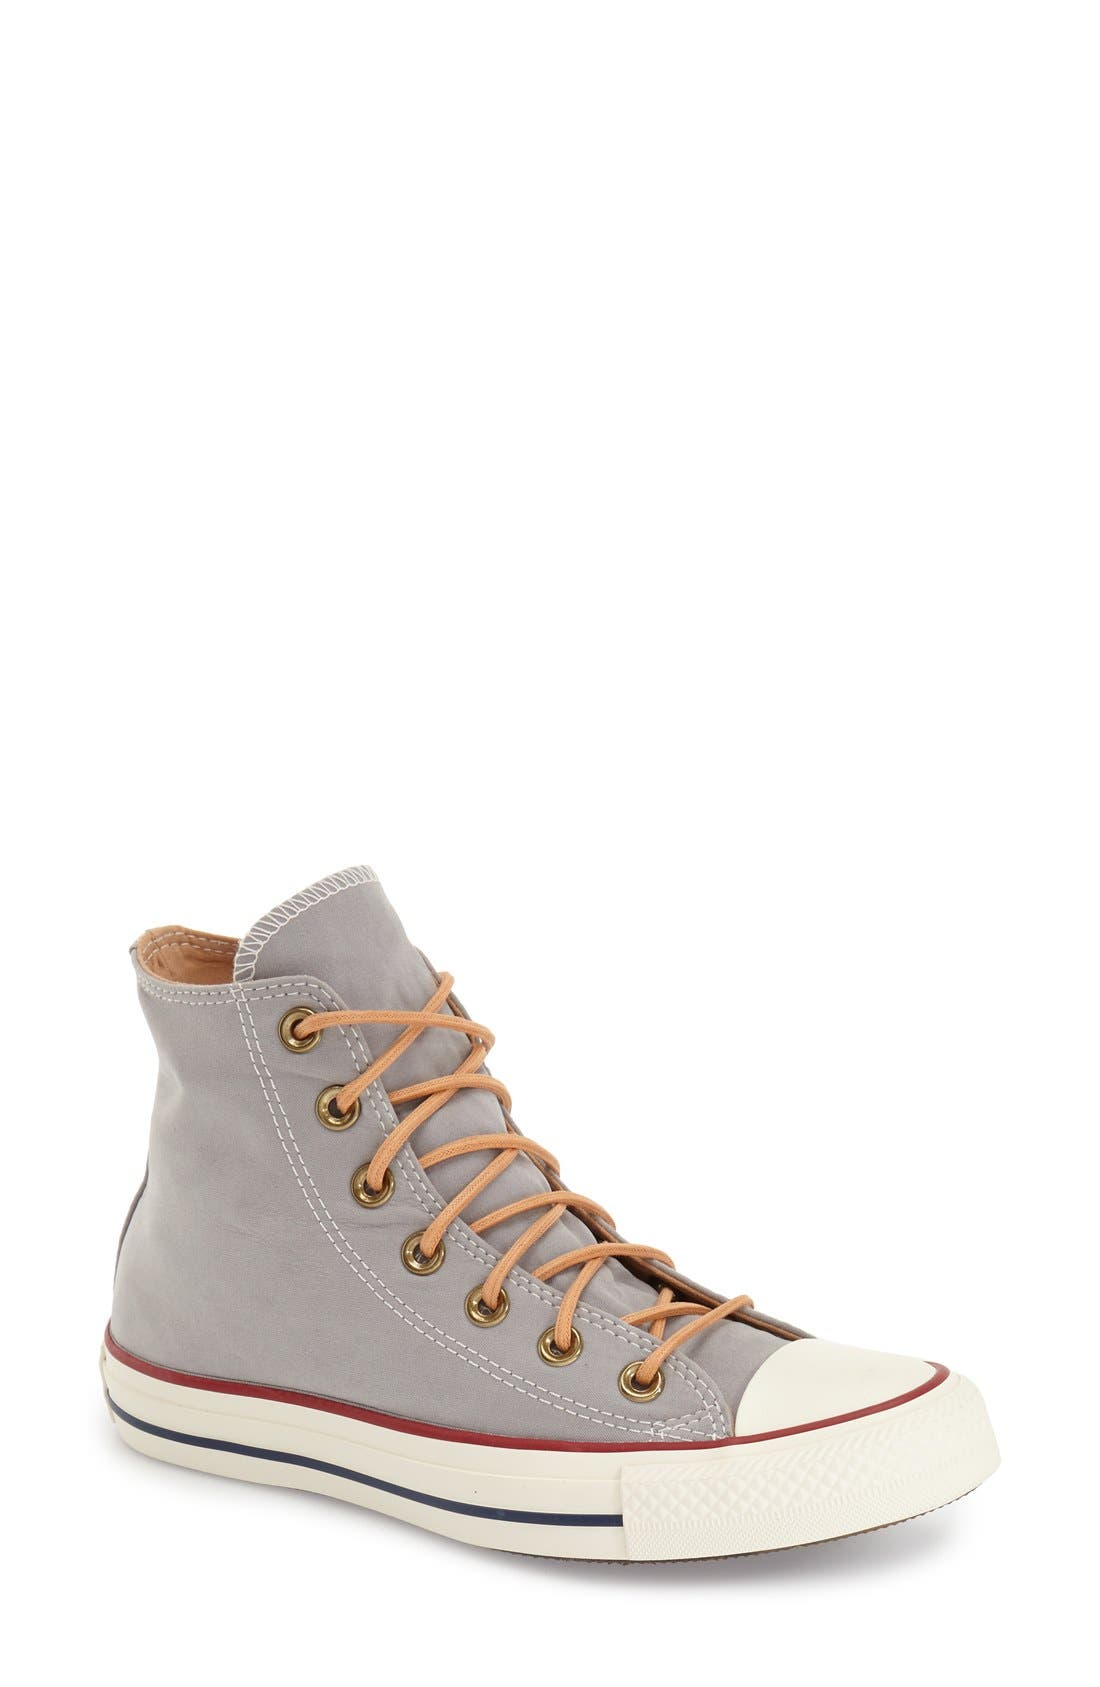 Alternate Image 1 Selected - Converse Chuck Taylor® All Star® 'Peached' High Top Sneaker (Women)